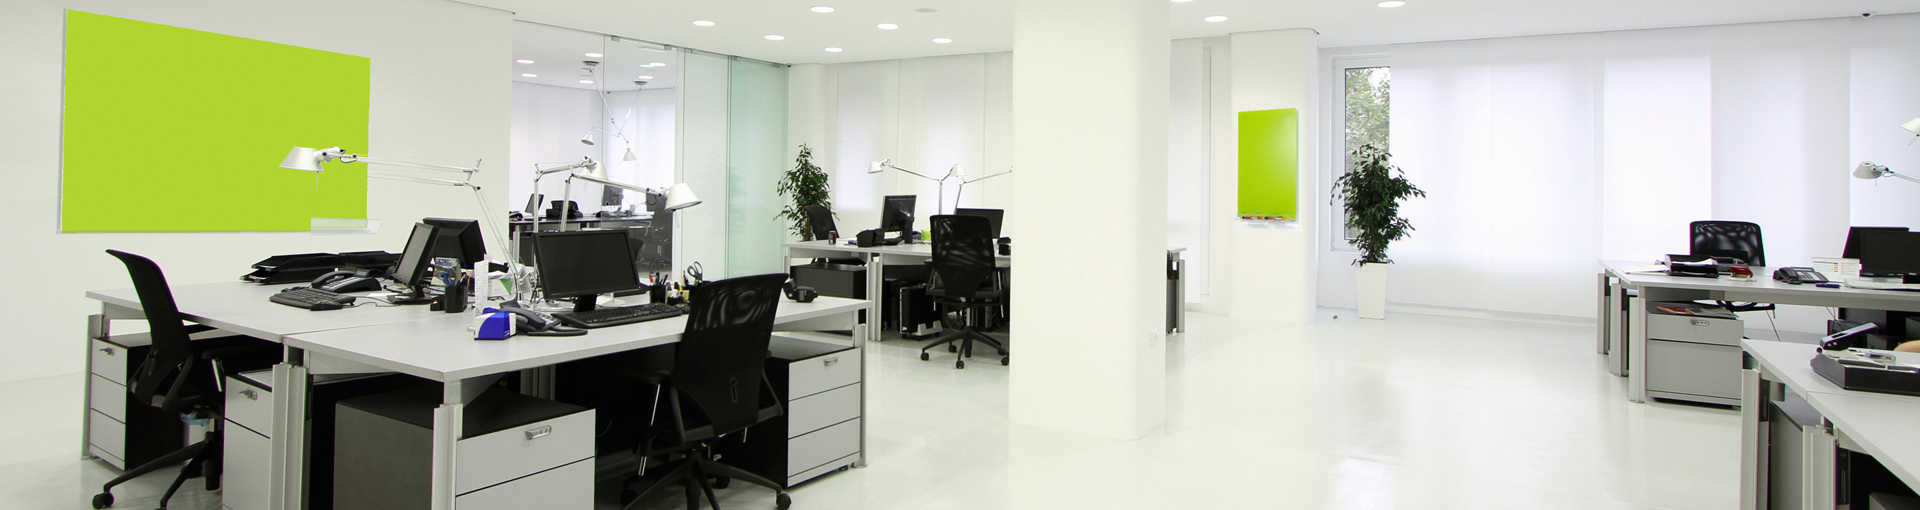 Regal Office Humidification